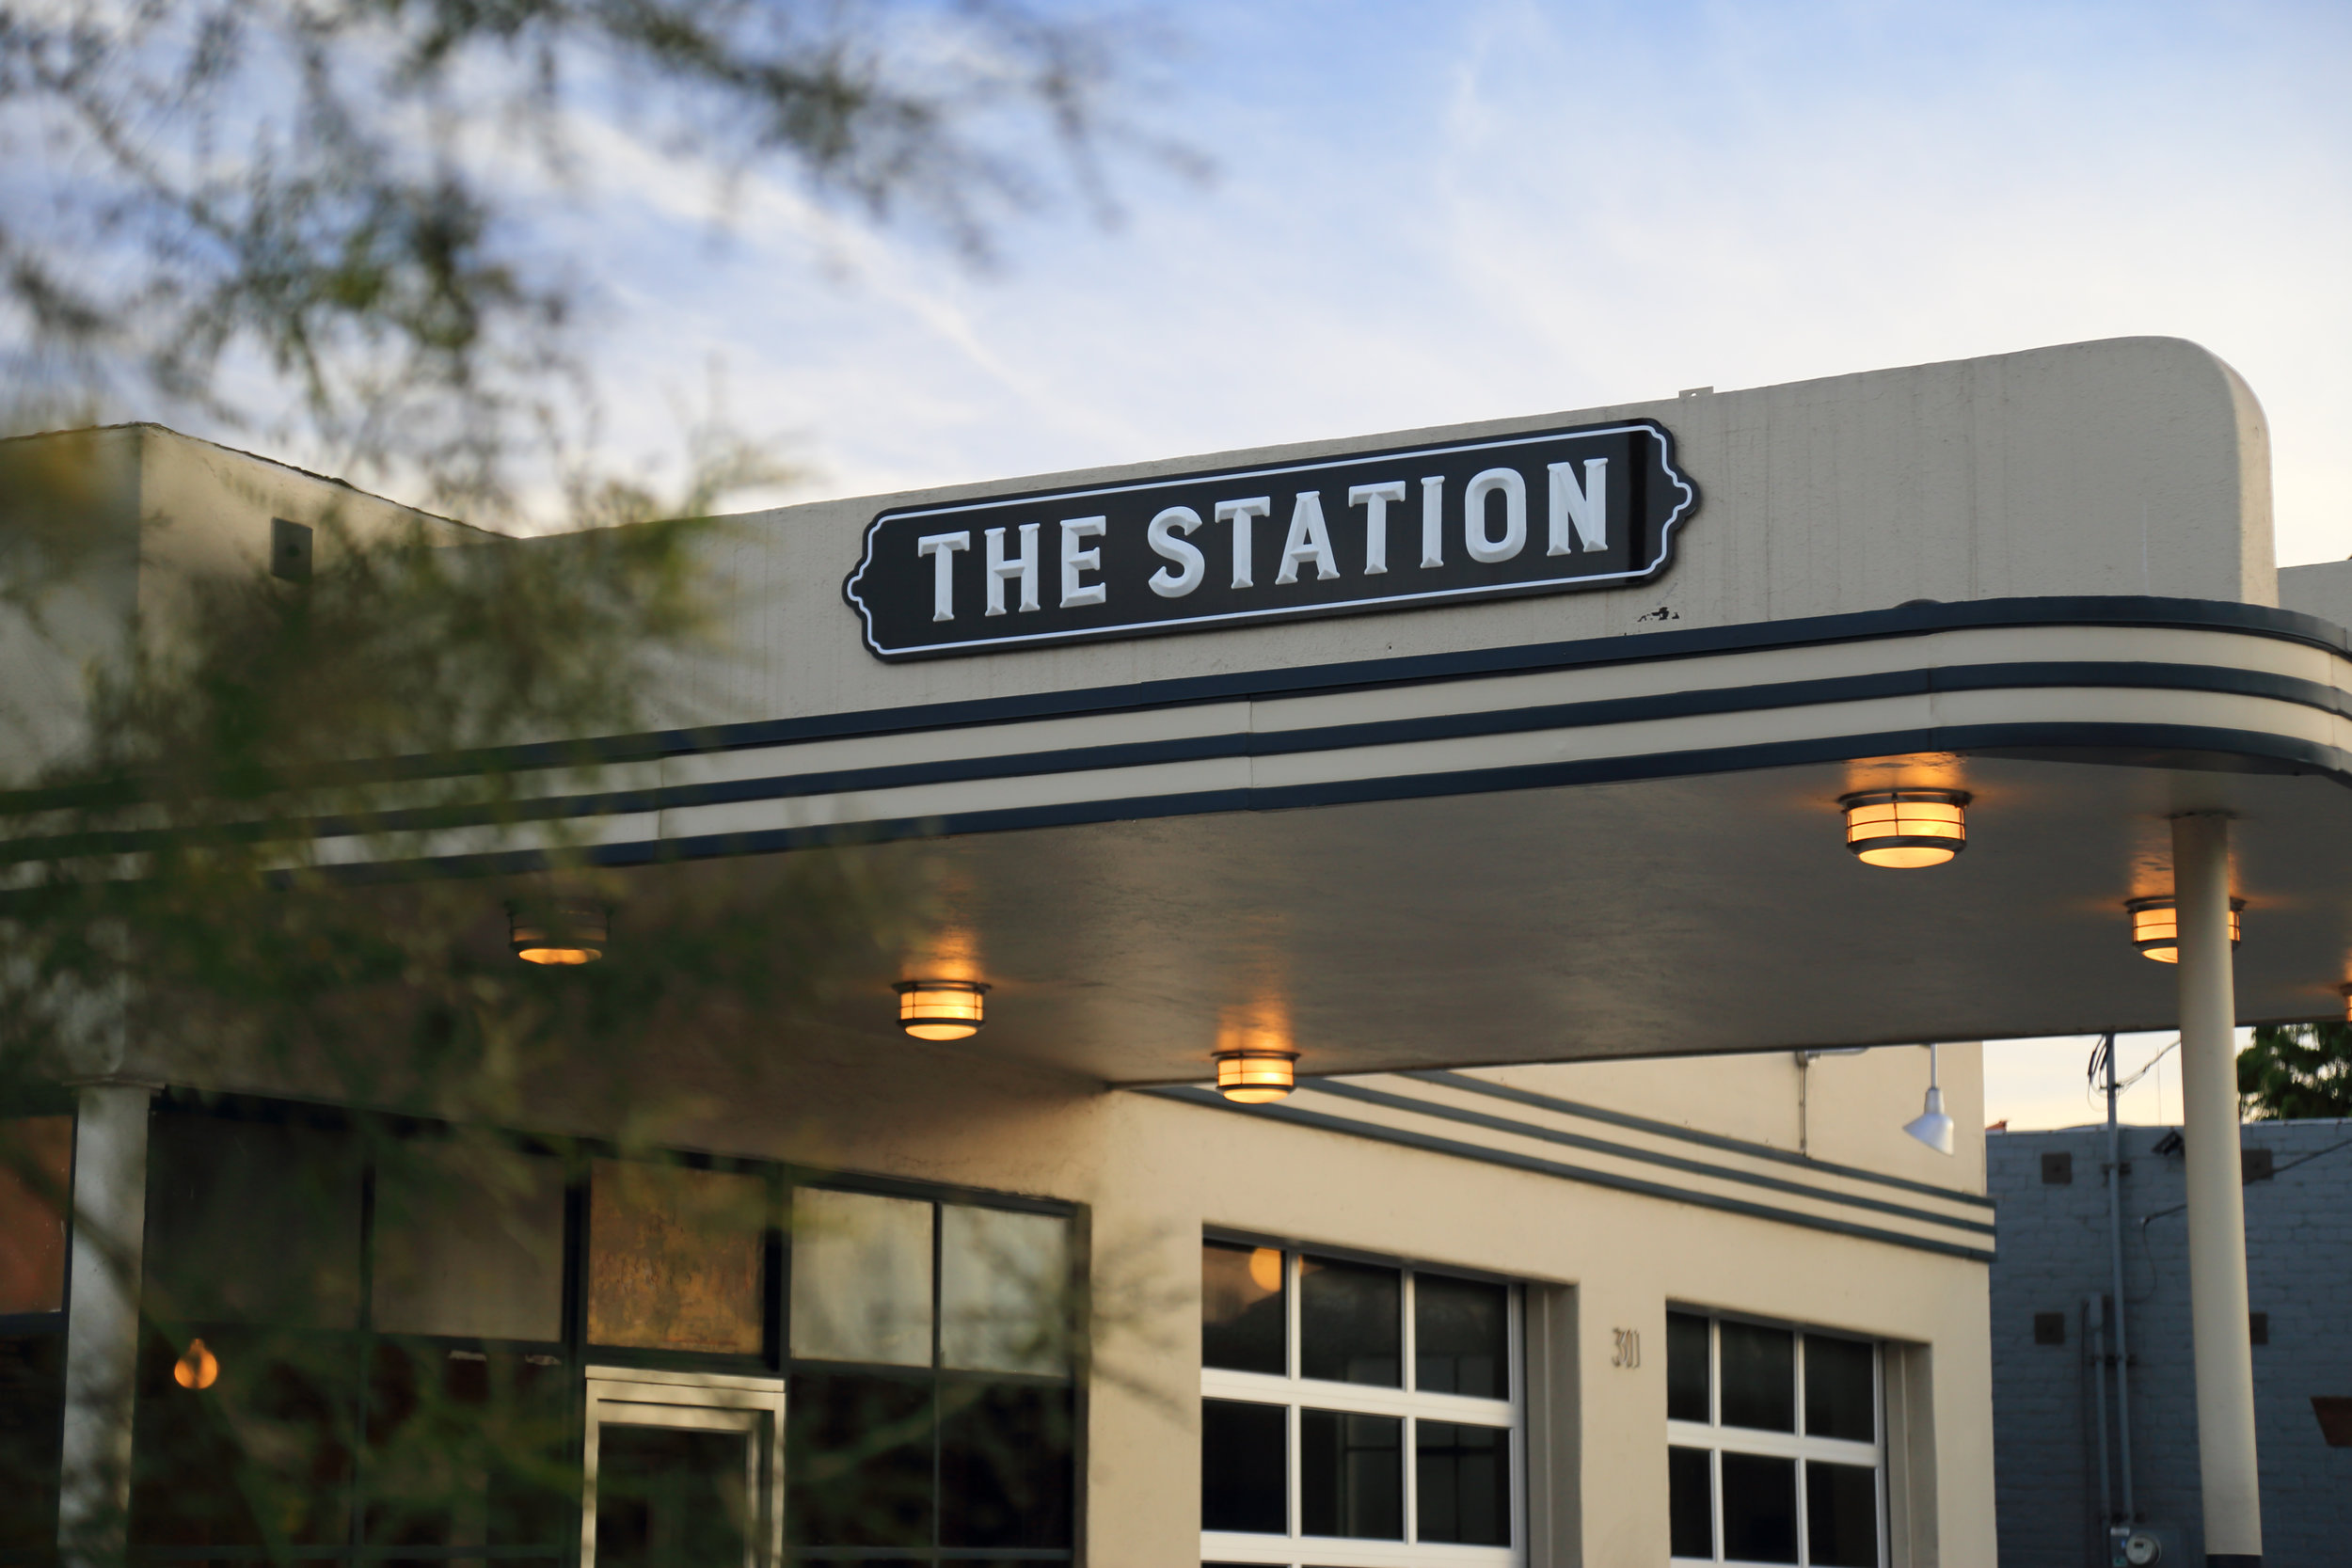 The Station sign